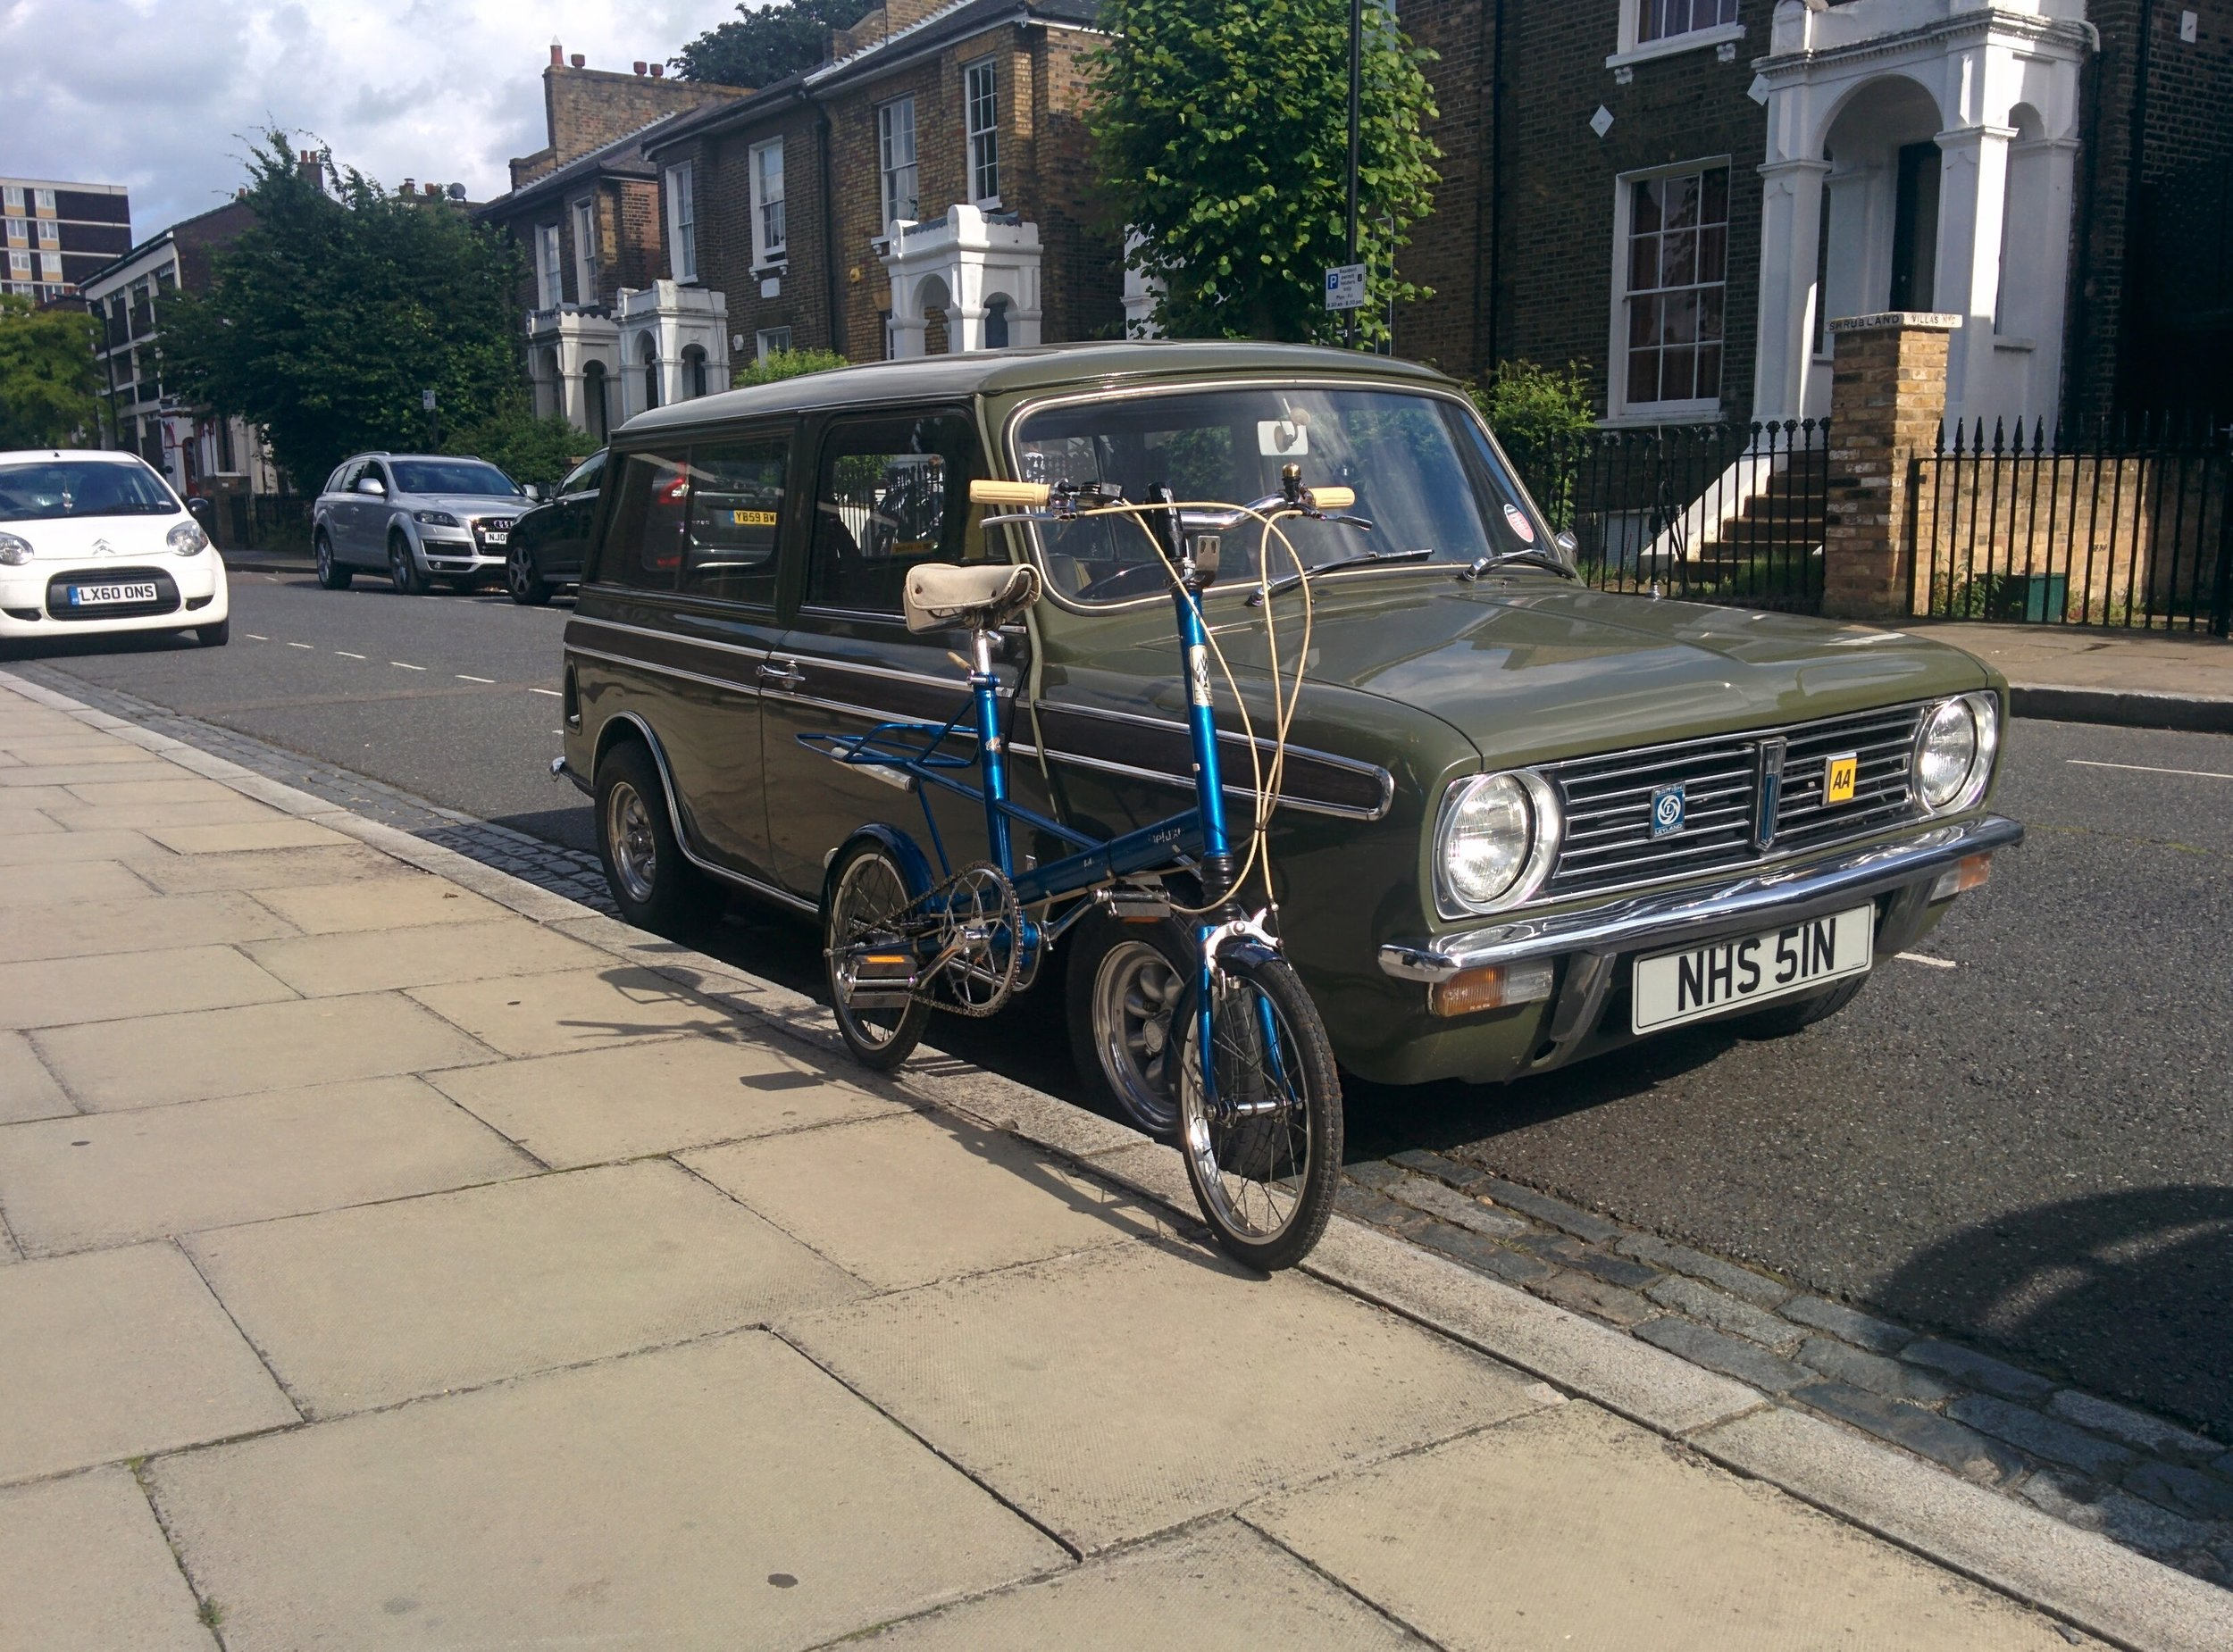 1966 Moulton Mini Deluxe  - Sold   Servicing -  Full strip down, clean and rebuild, new chain, tyres   June / July 2016